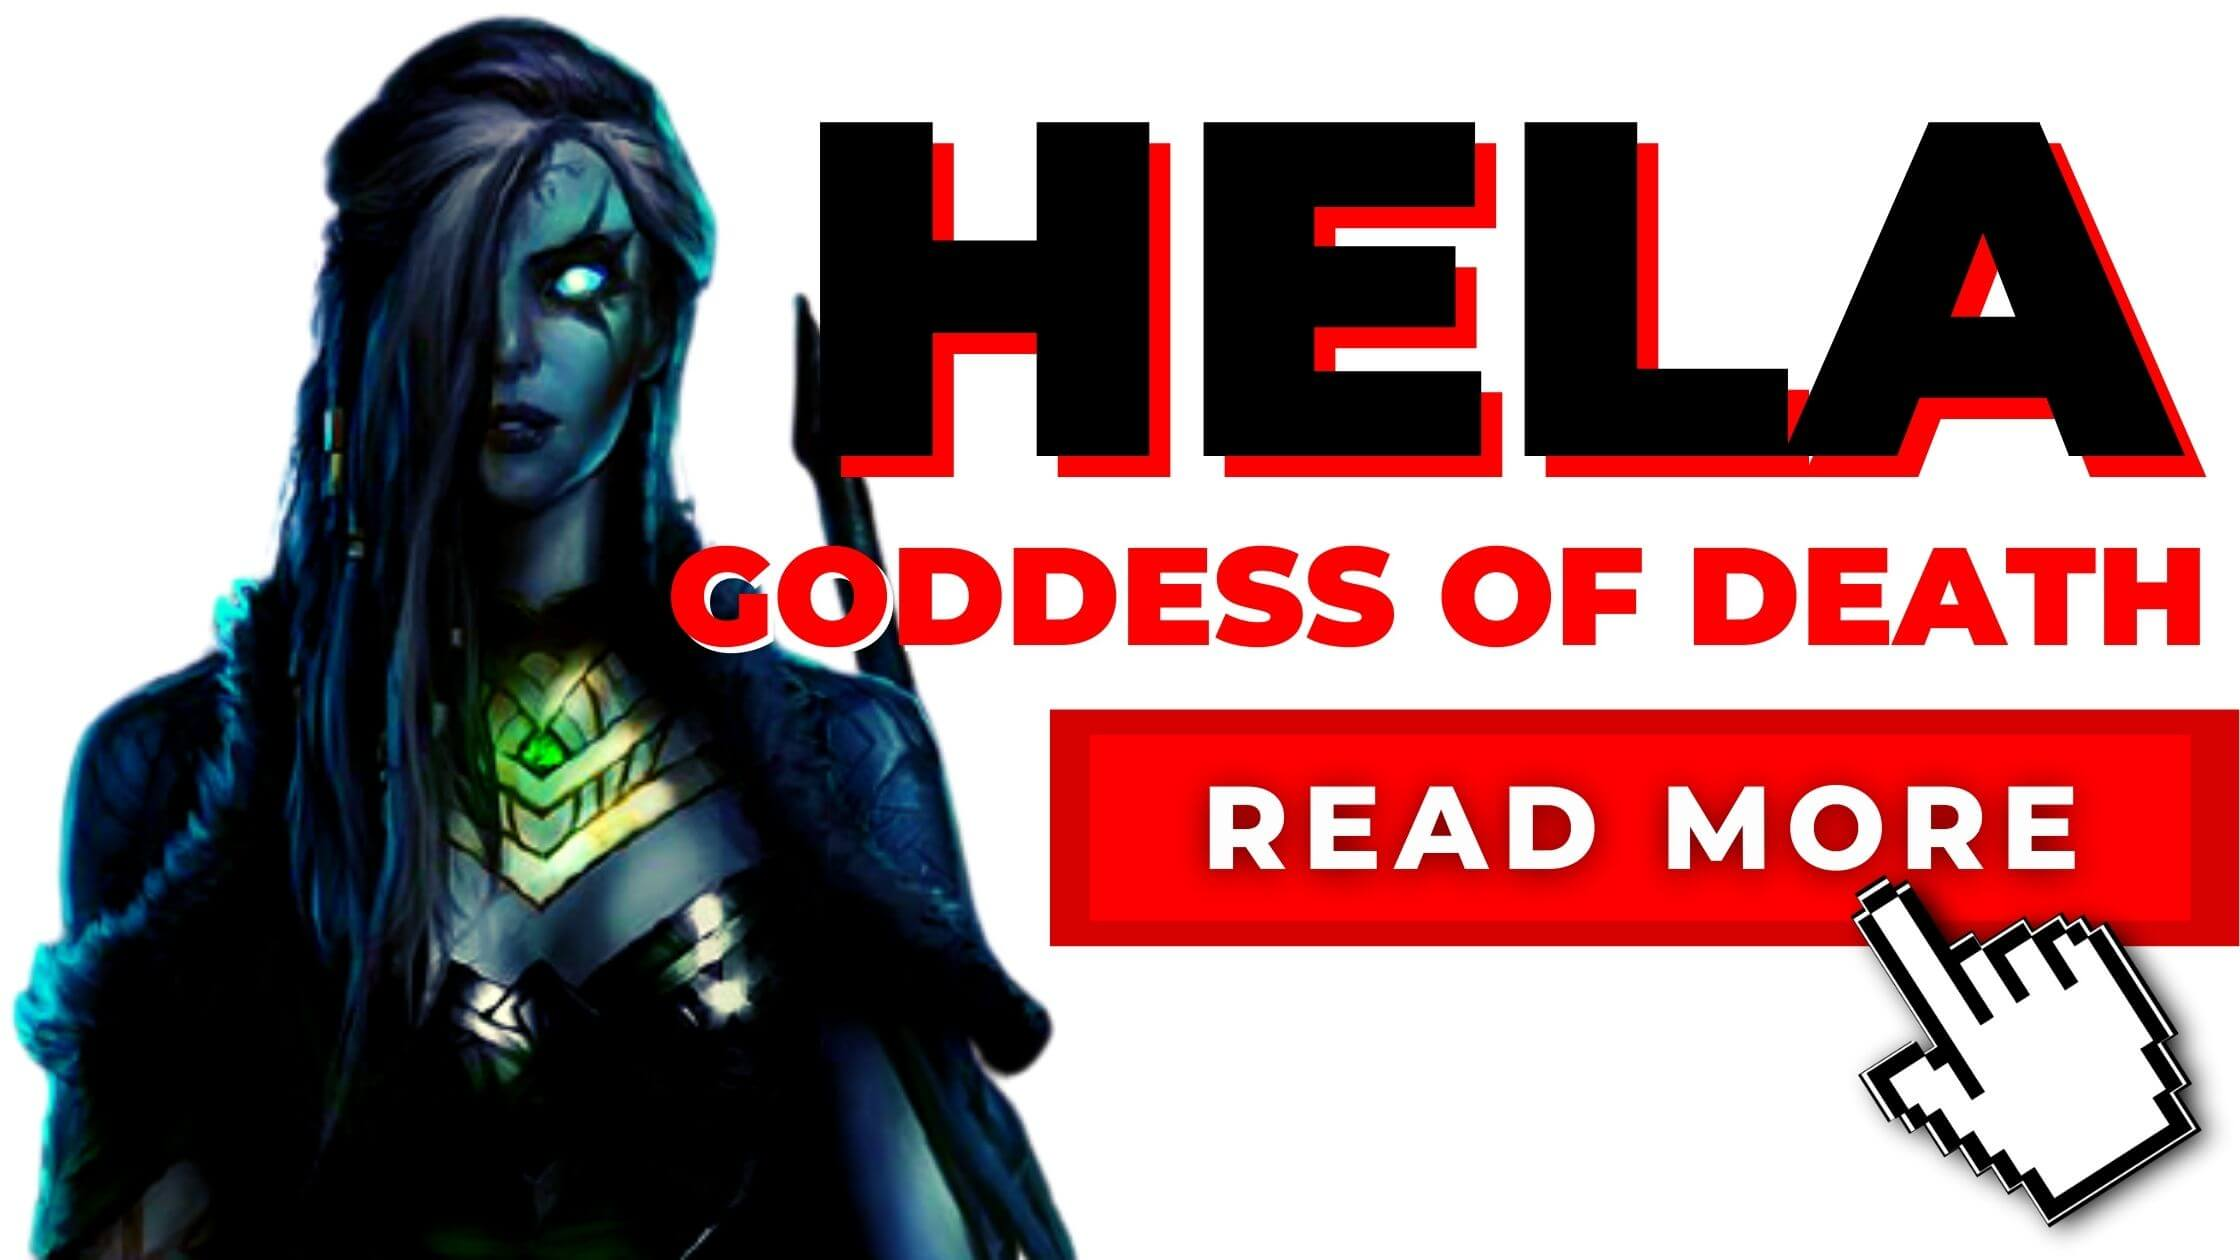 Hel-the-goddess-of-death